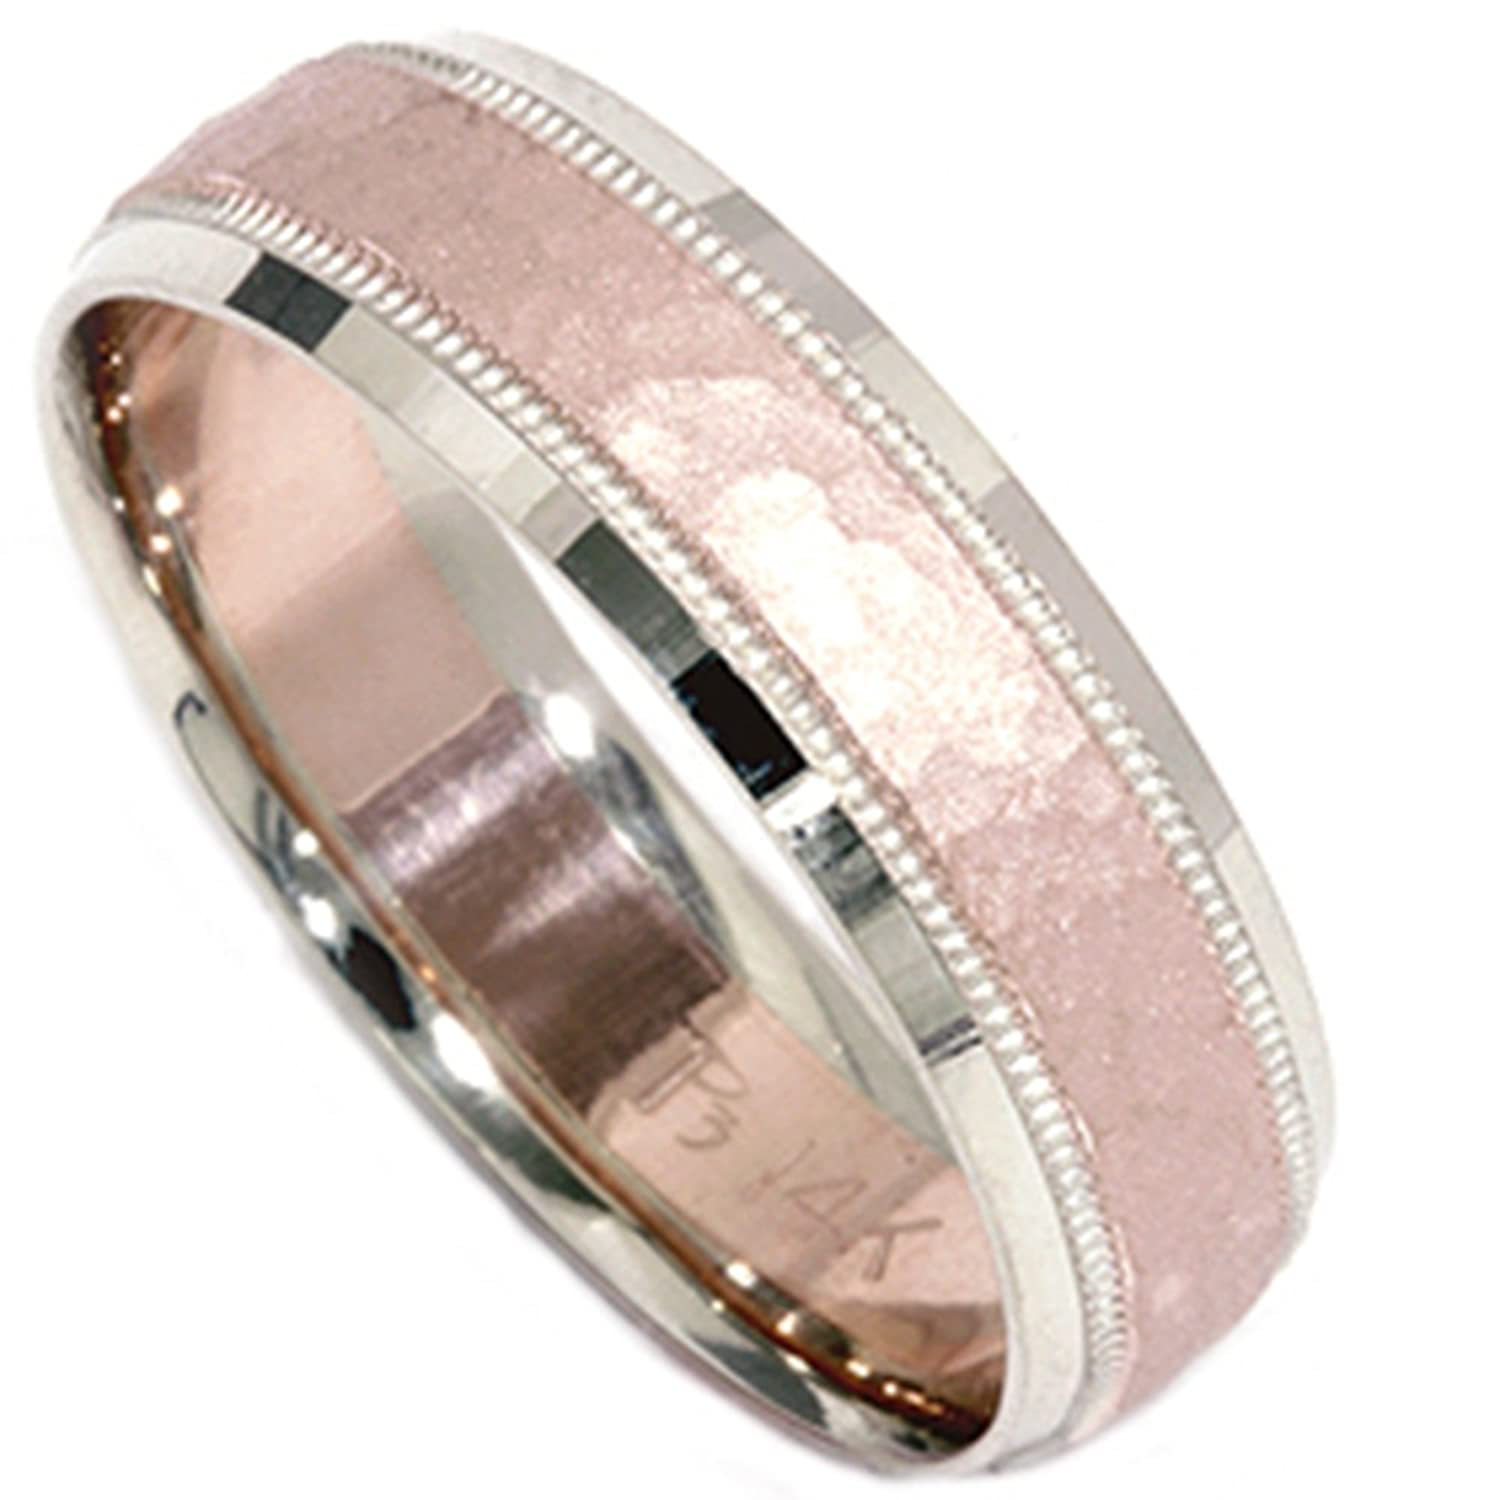 6mm hammered wedding band 14k rose gold